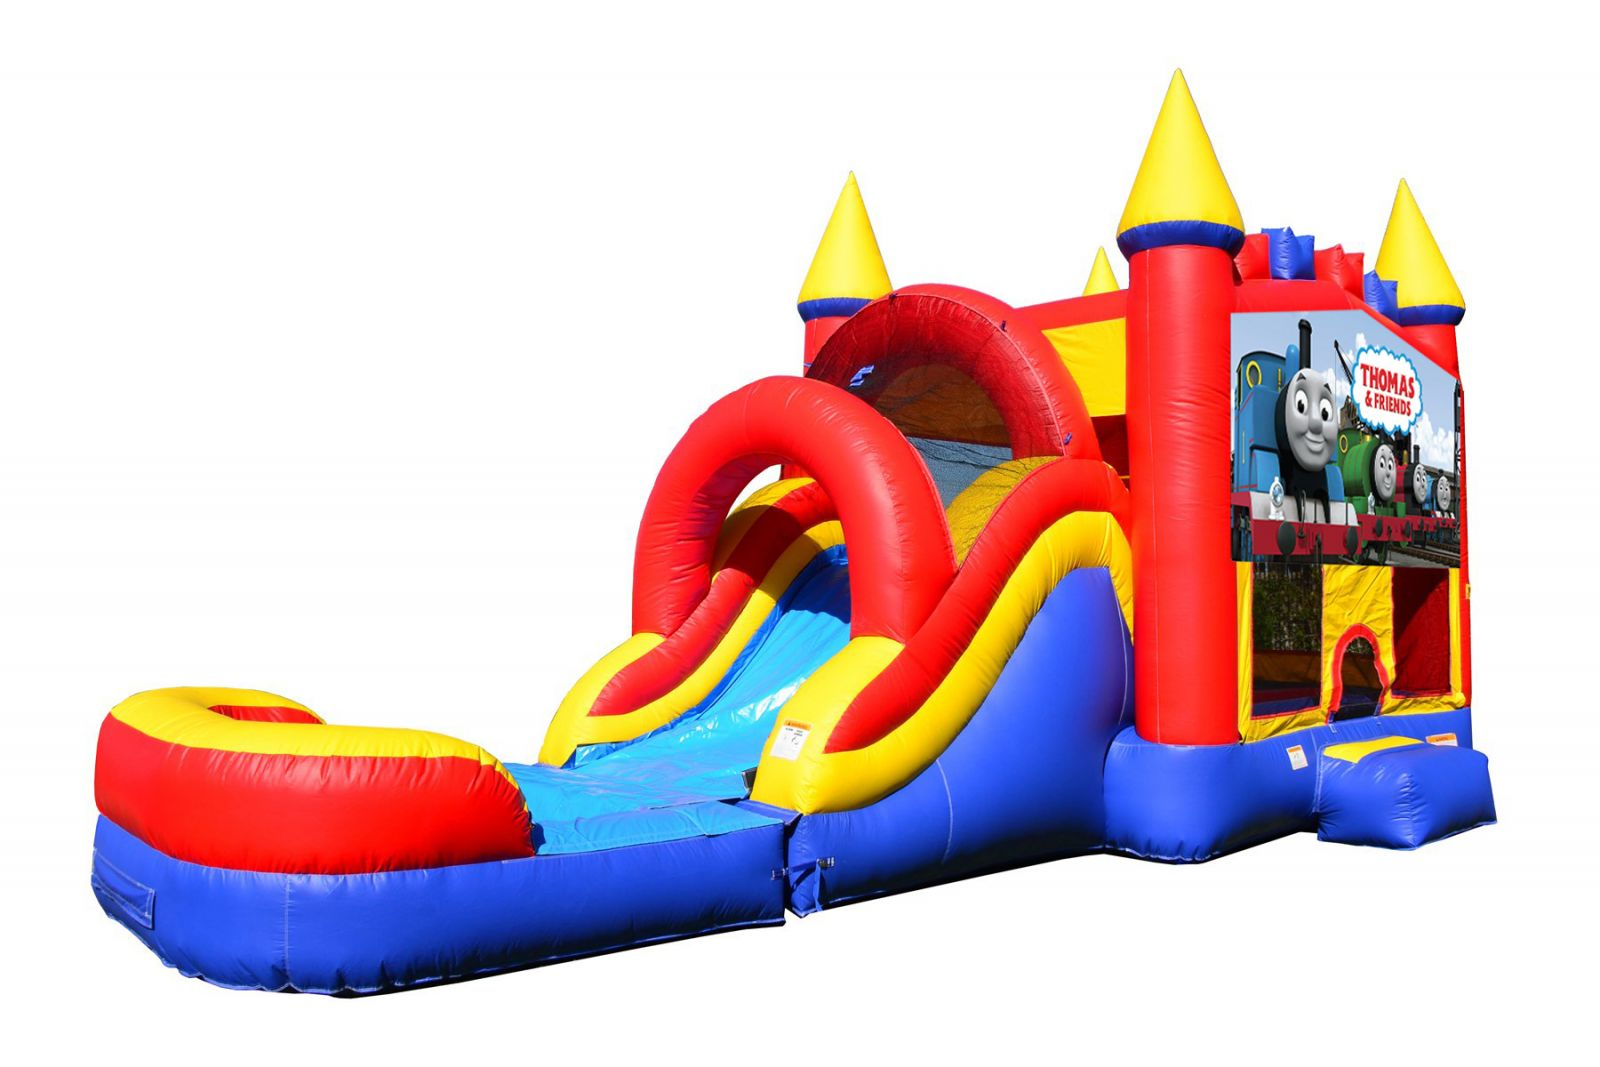 Thomas The Train Bounce House With Water Slide And Pool